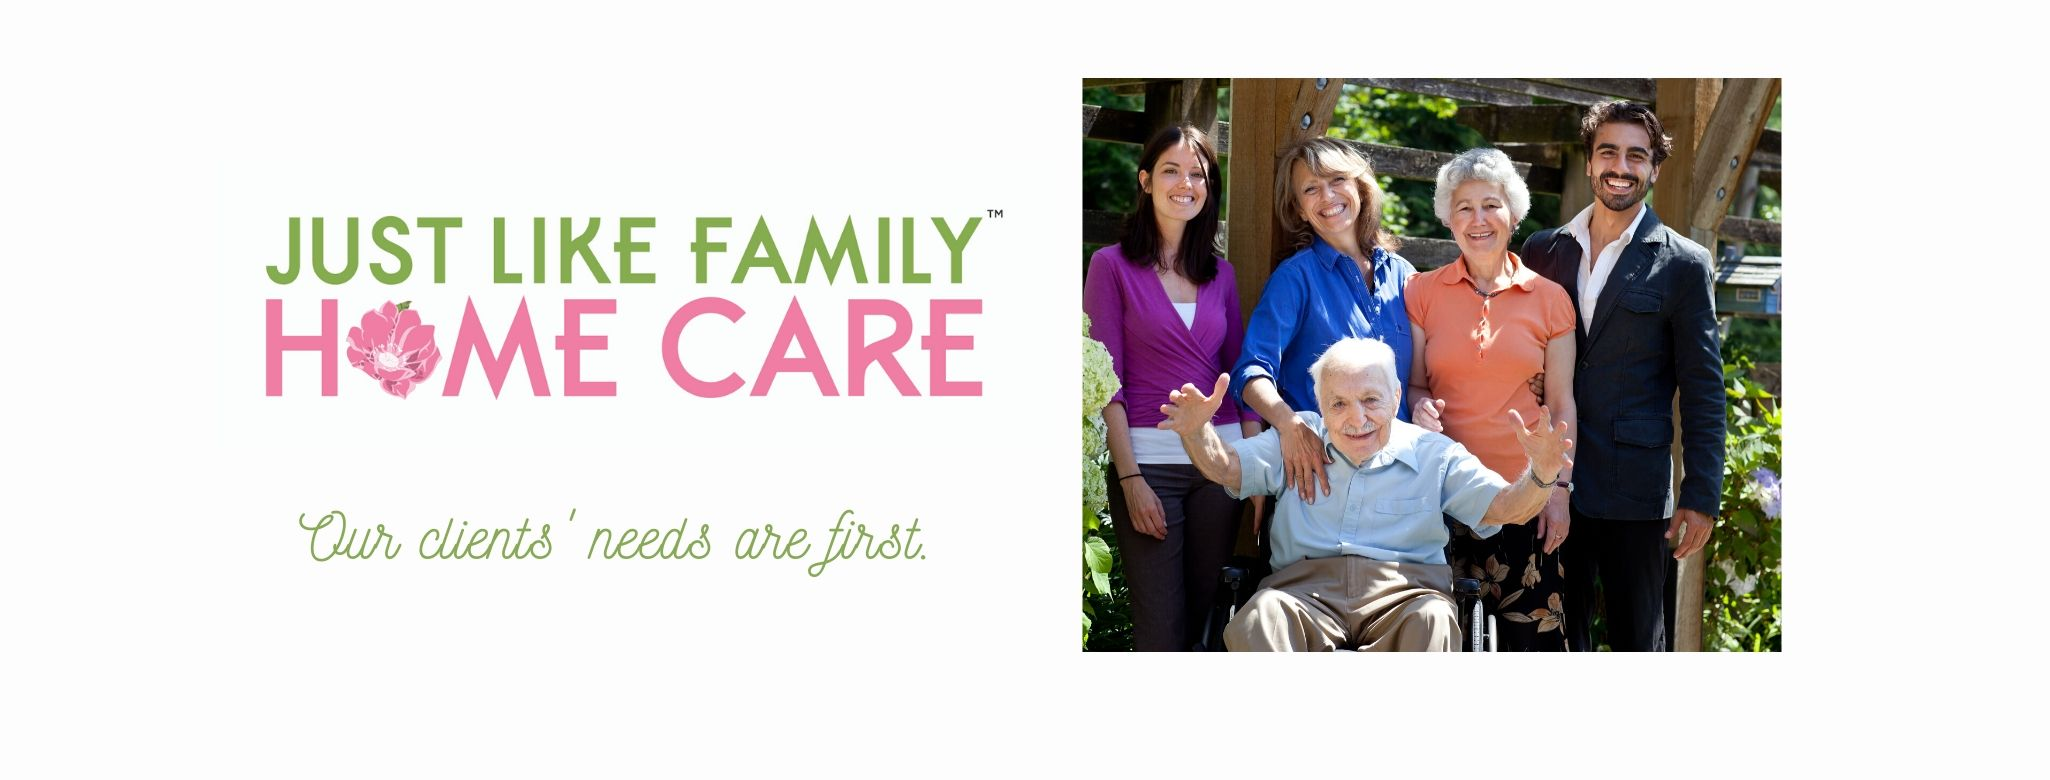 Just Like Family Home Care